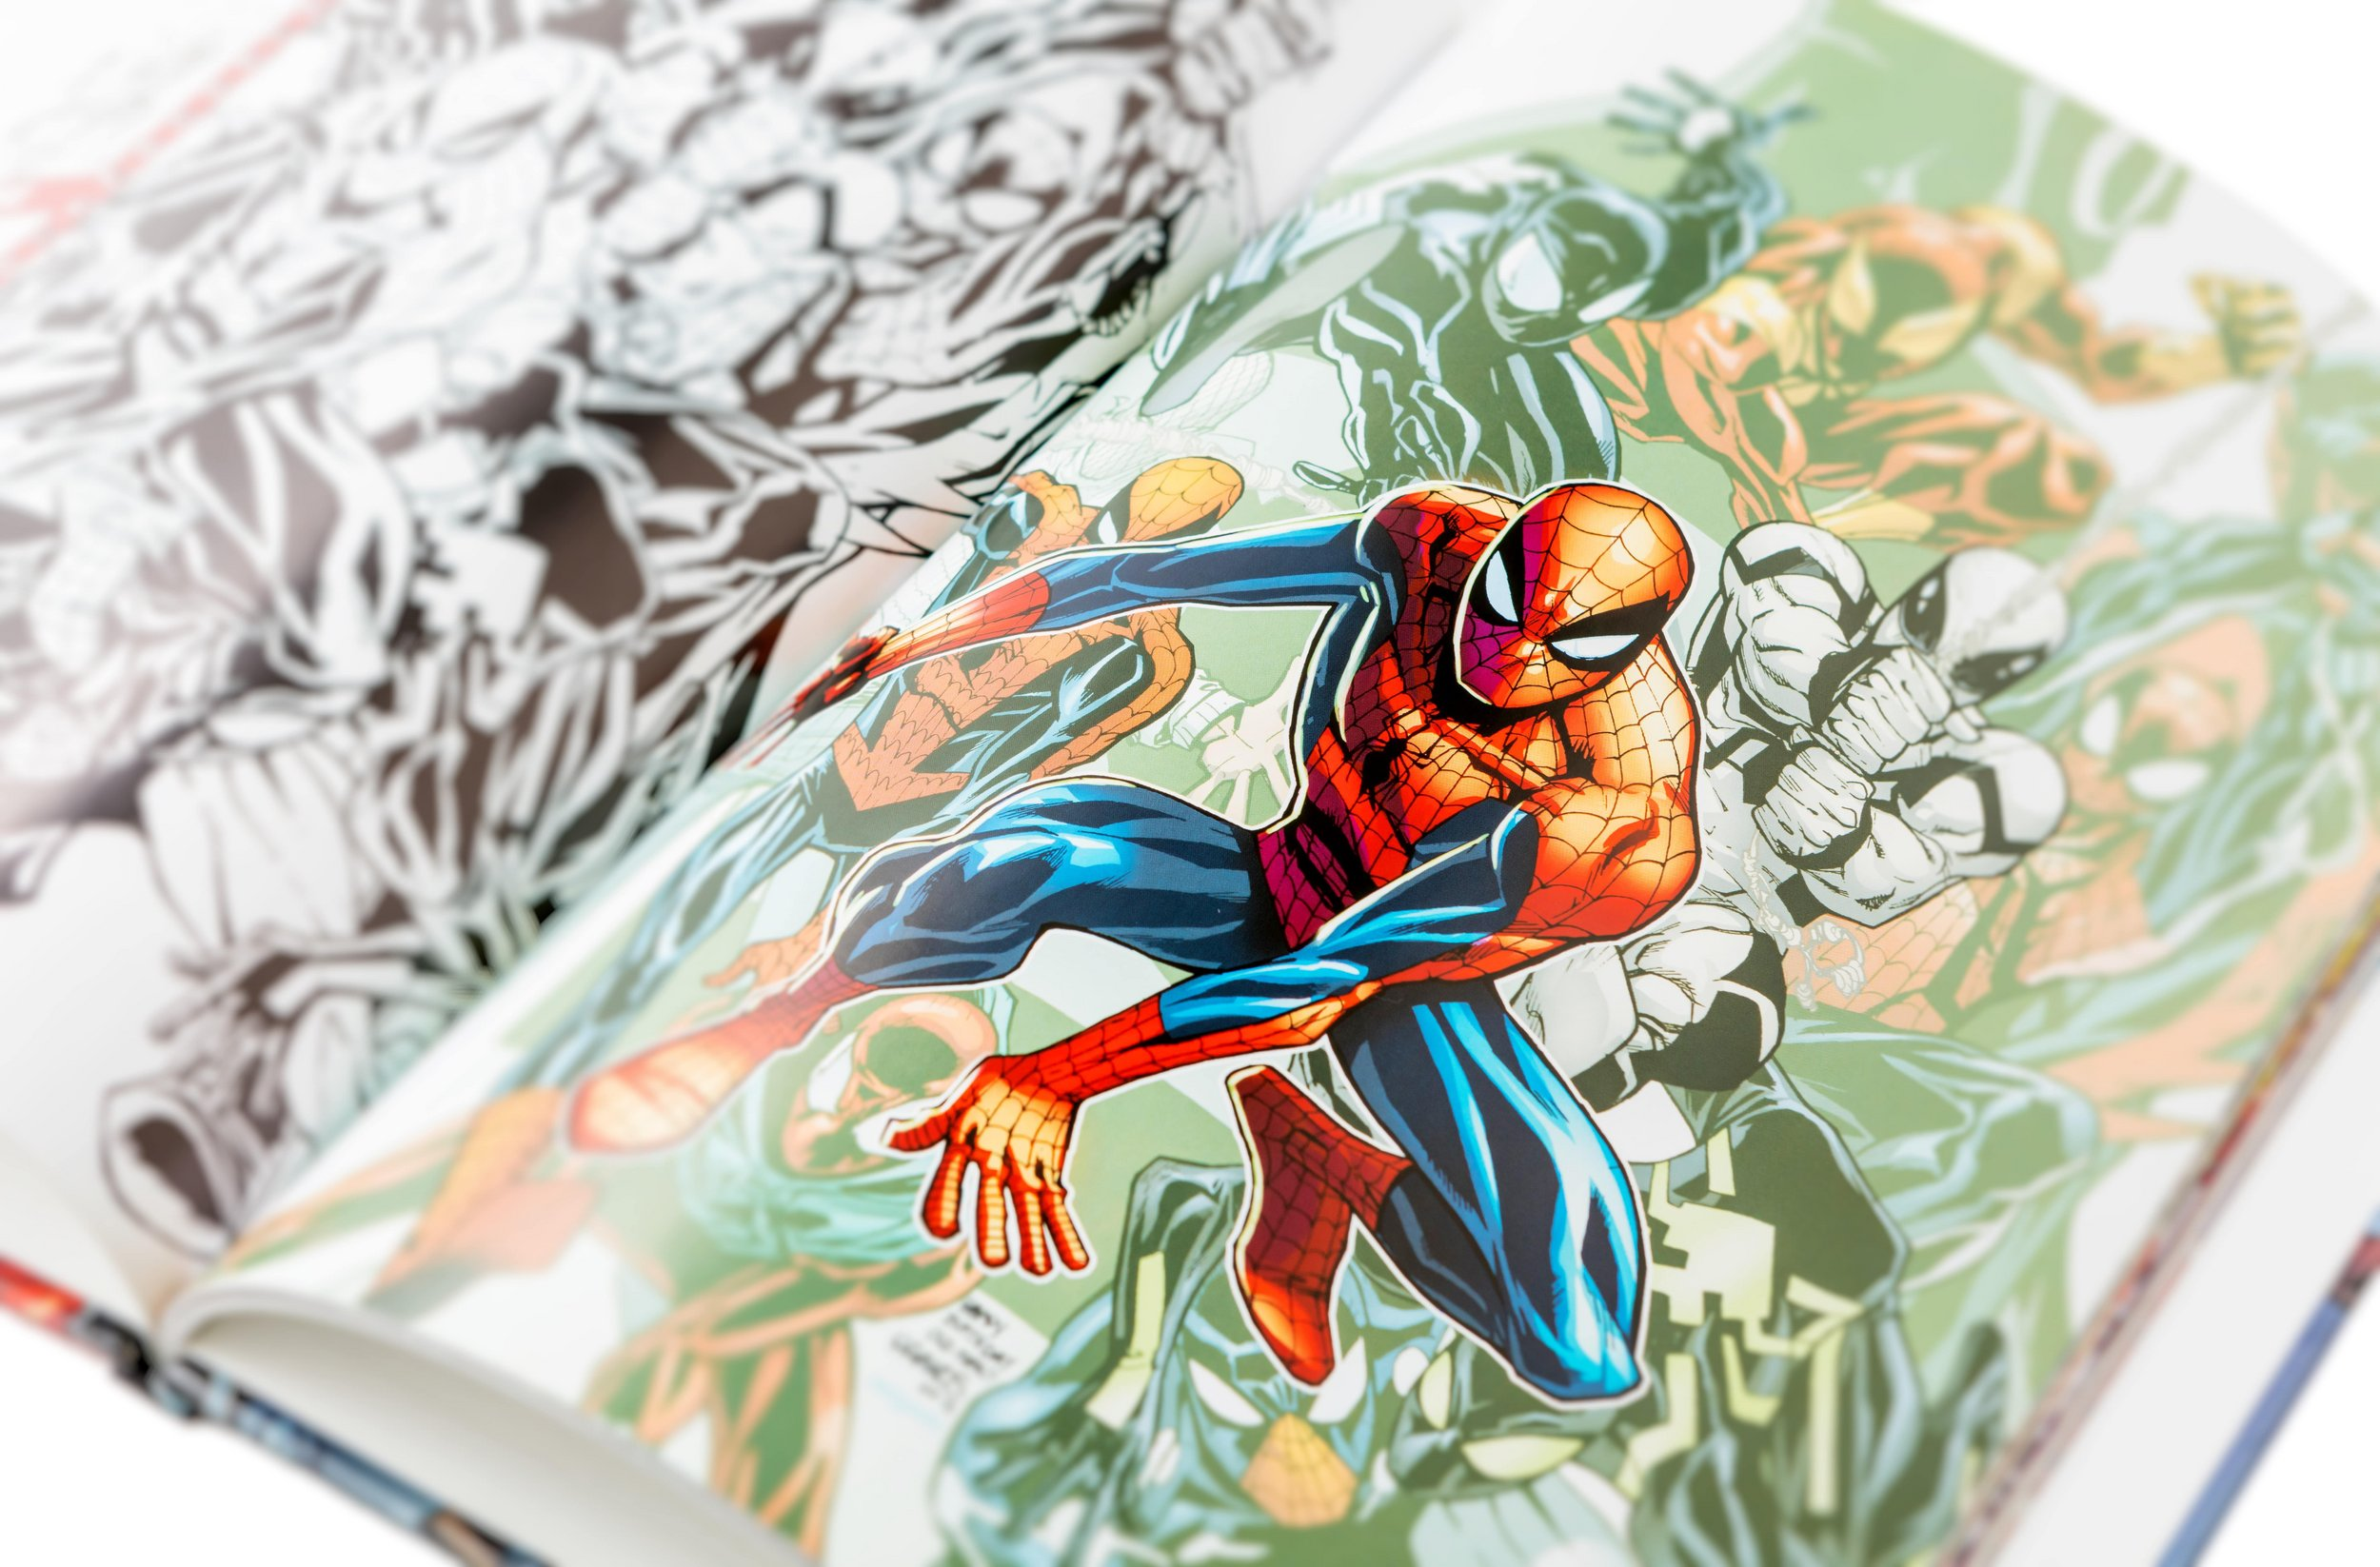 Marvel-Spider-Book-Printing-min.jpg